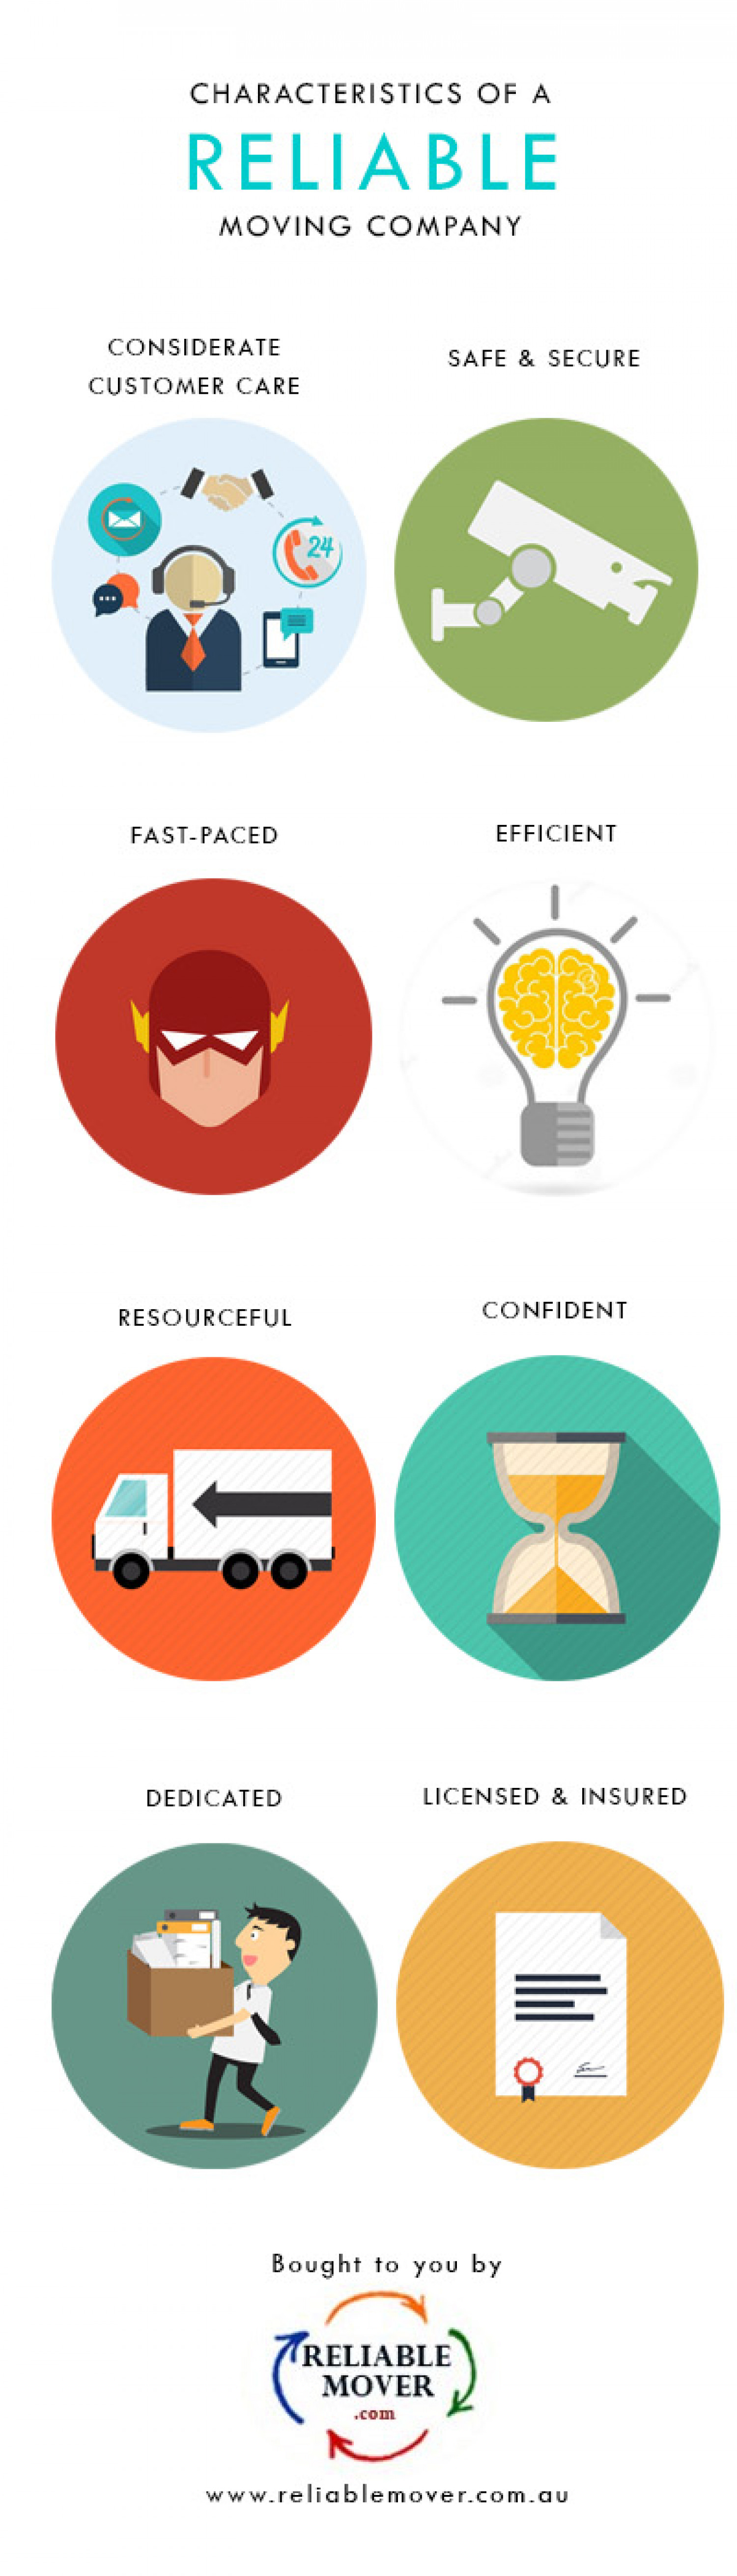 Characteristics of a Reliable Moving Company Infographic